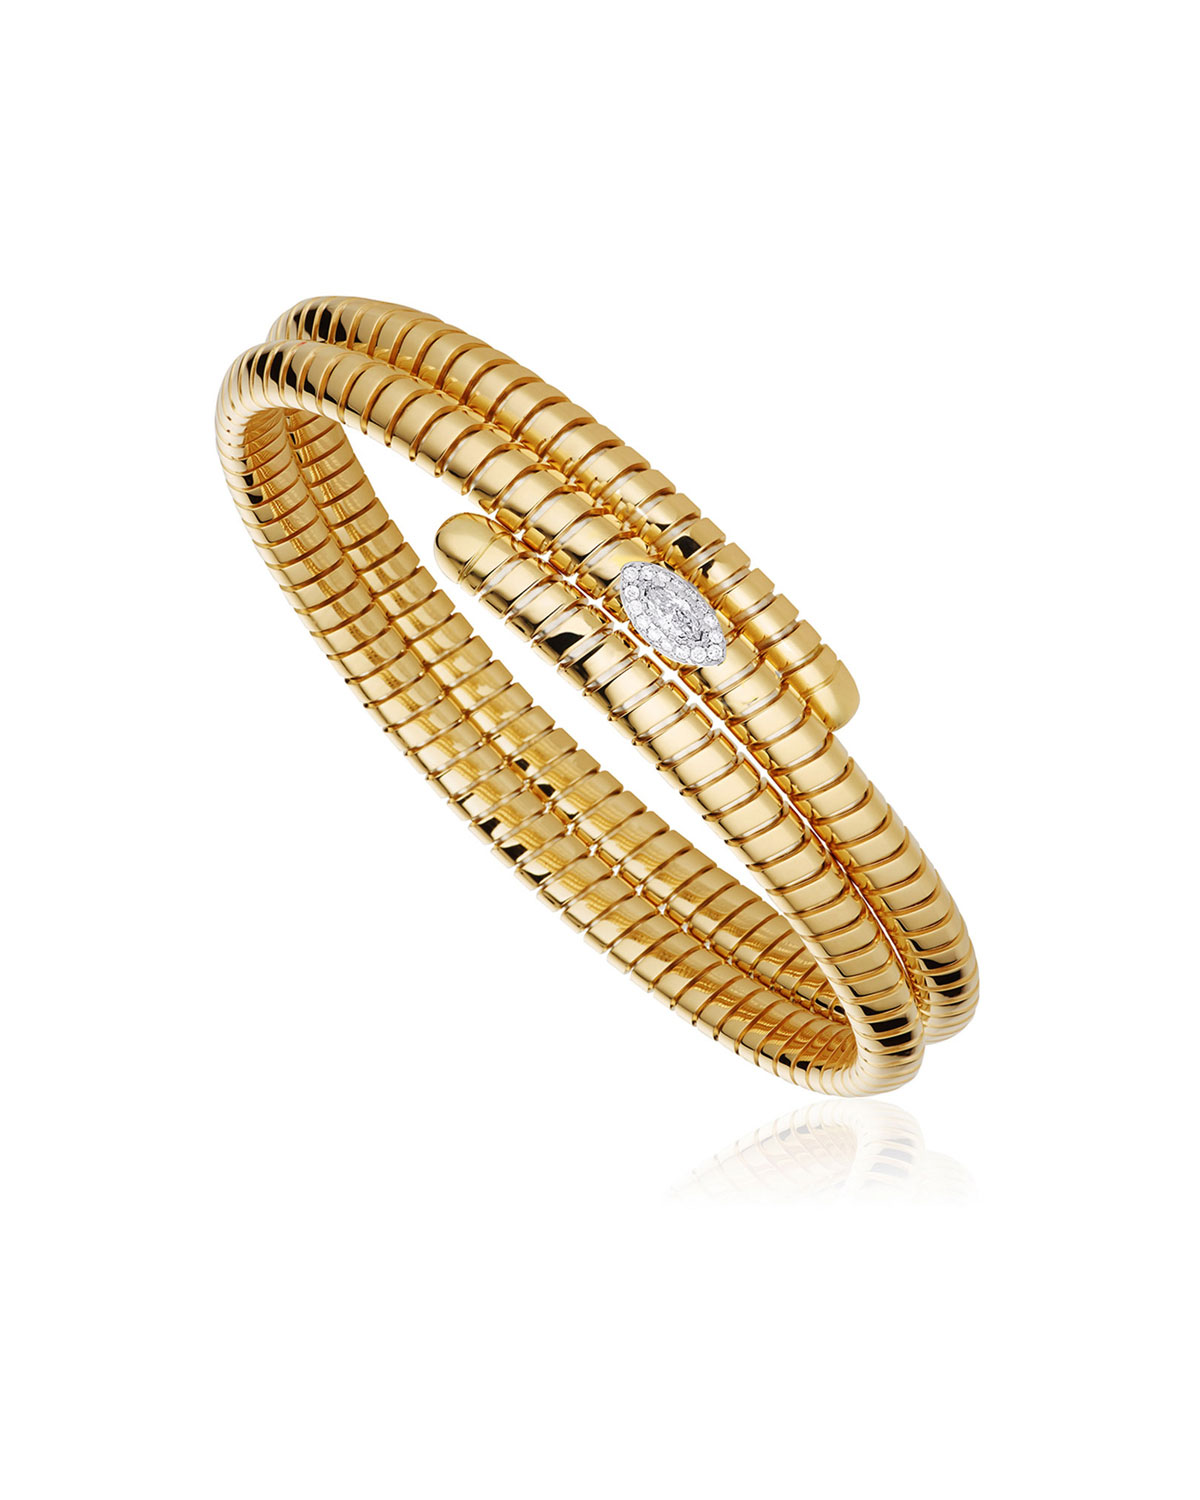 MARINA B Trisola 18K Diamond Triple Navetta Bangle, Size S